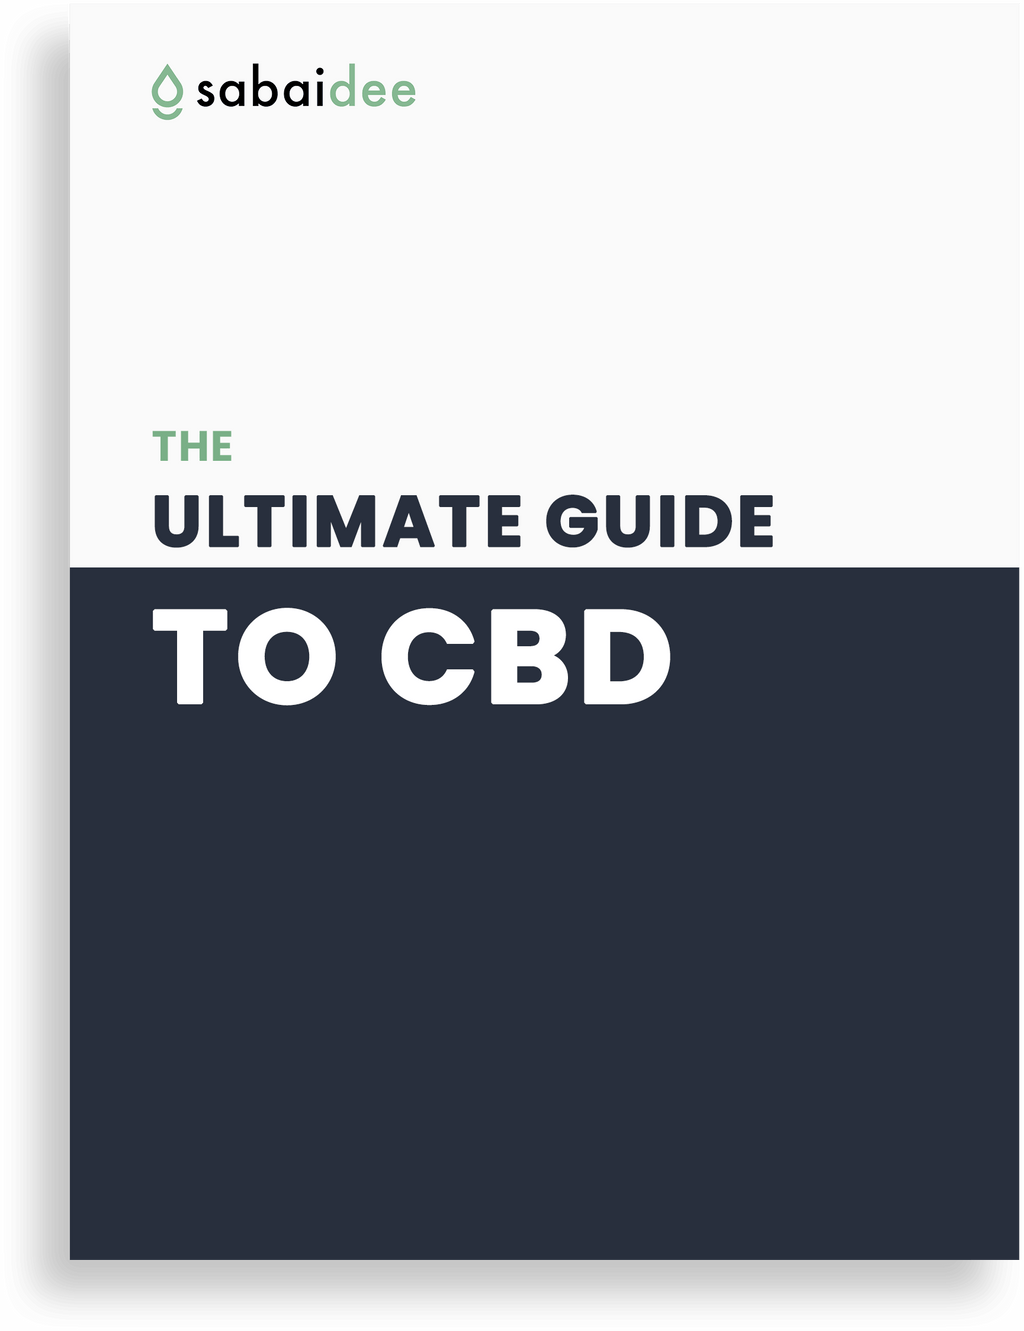 How Much CBD Oil Should I Take [Dosage Guide] – SabaiDee